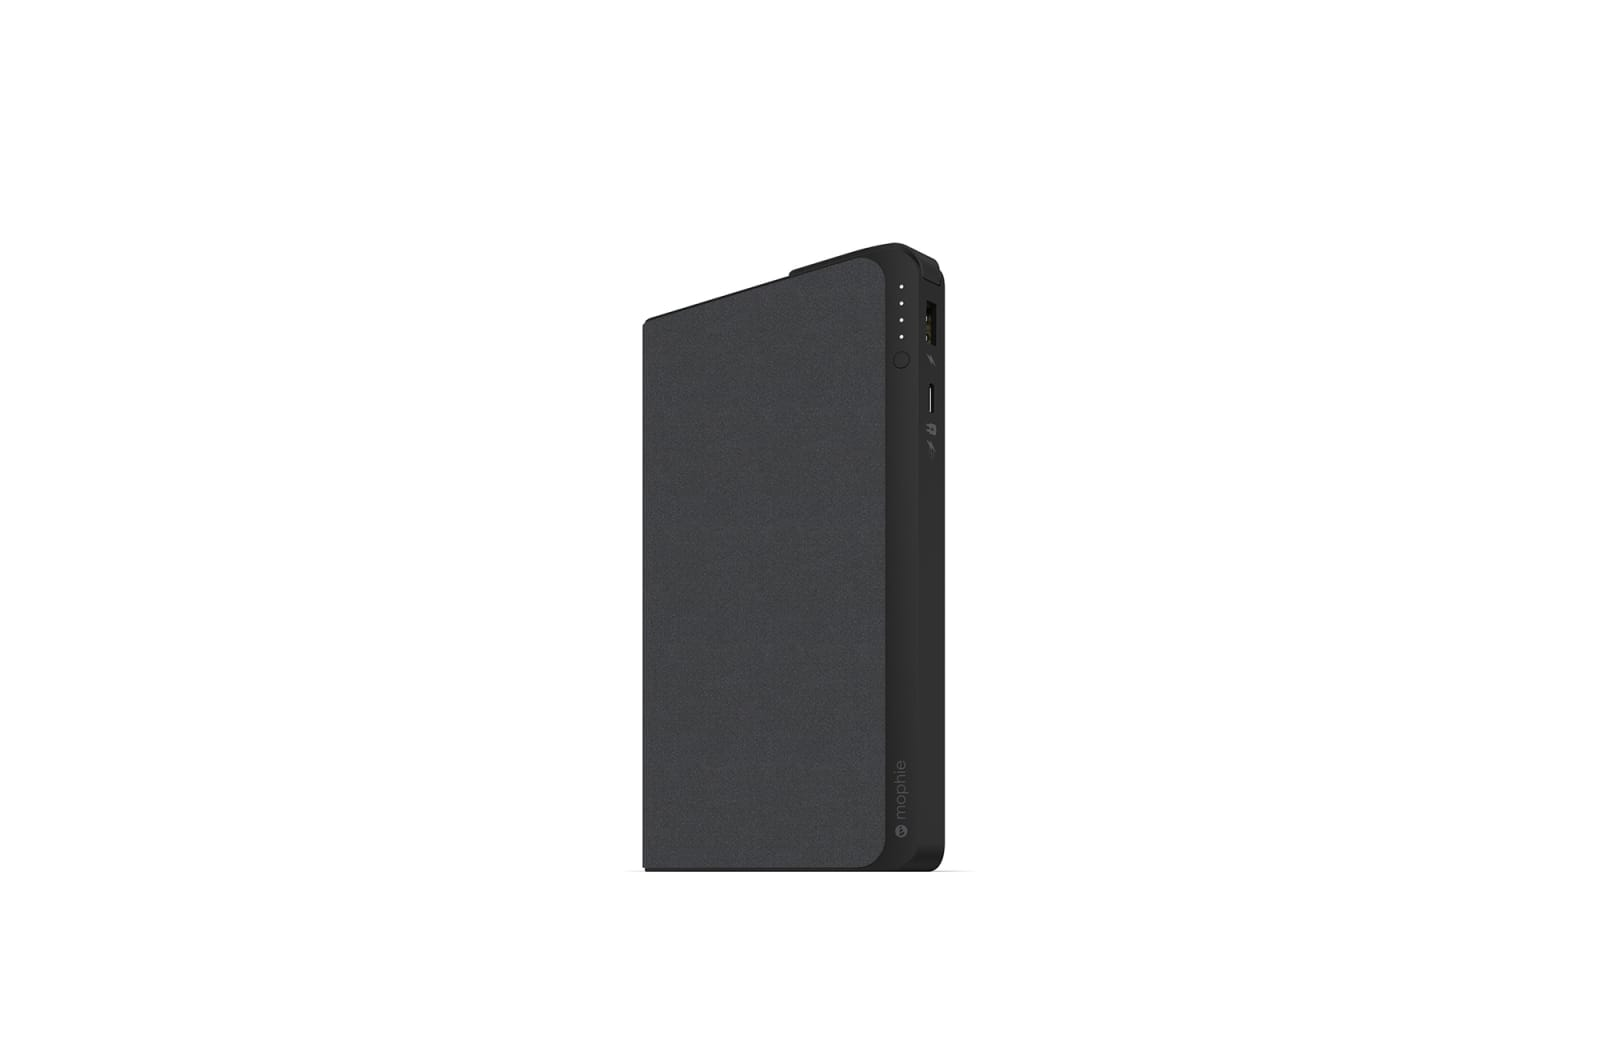 Mophie Powerstation AC Portable Laptop Charger